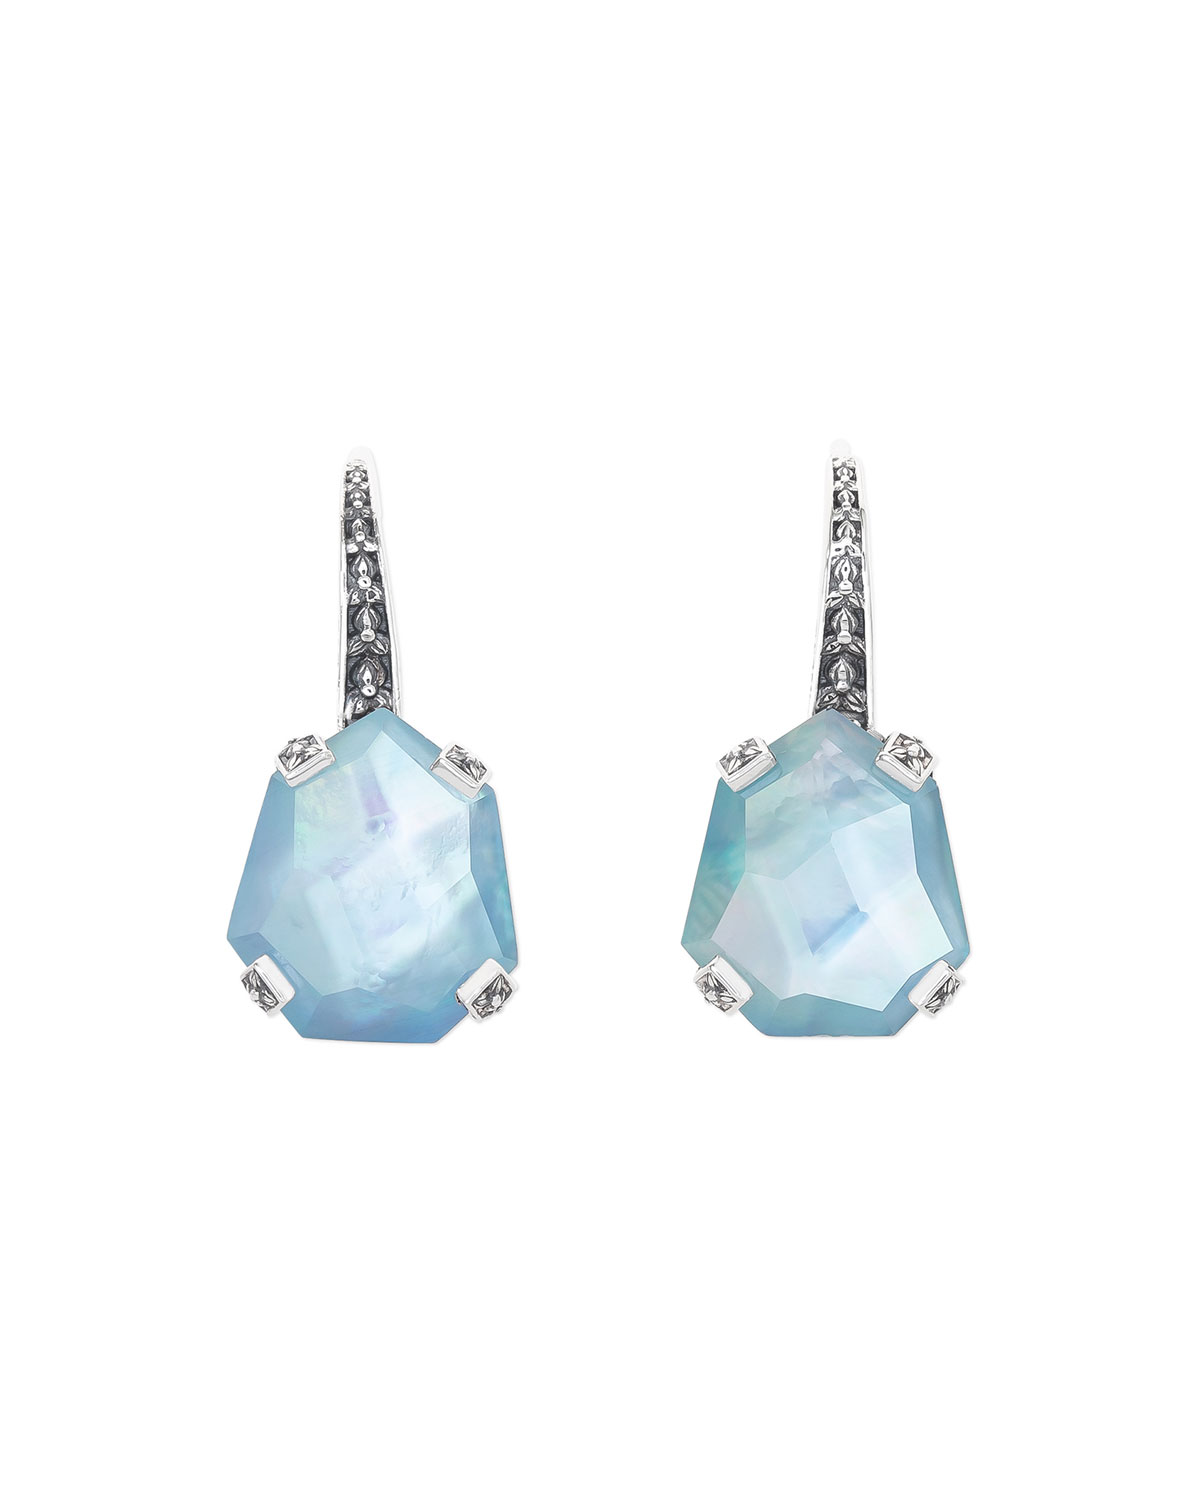 Galactical Freeform Triplet Earrings, Blue